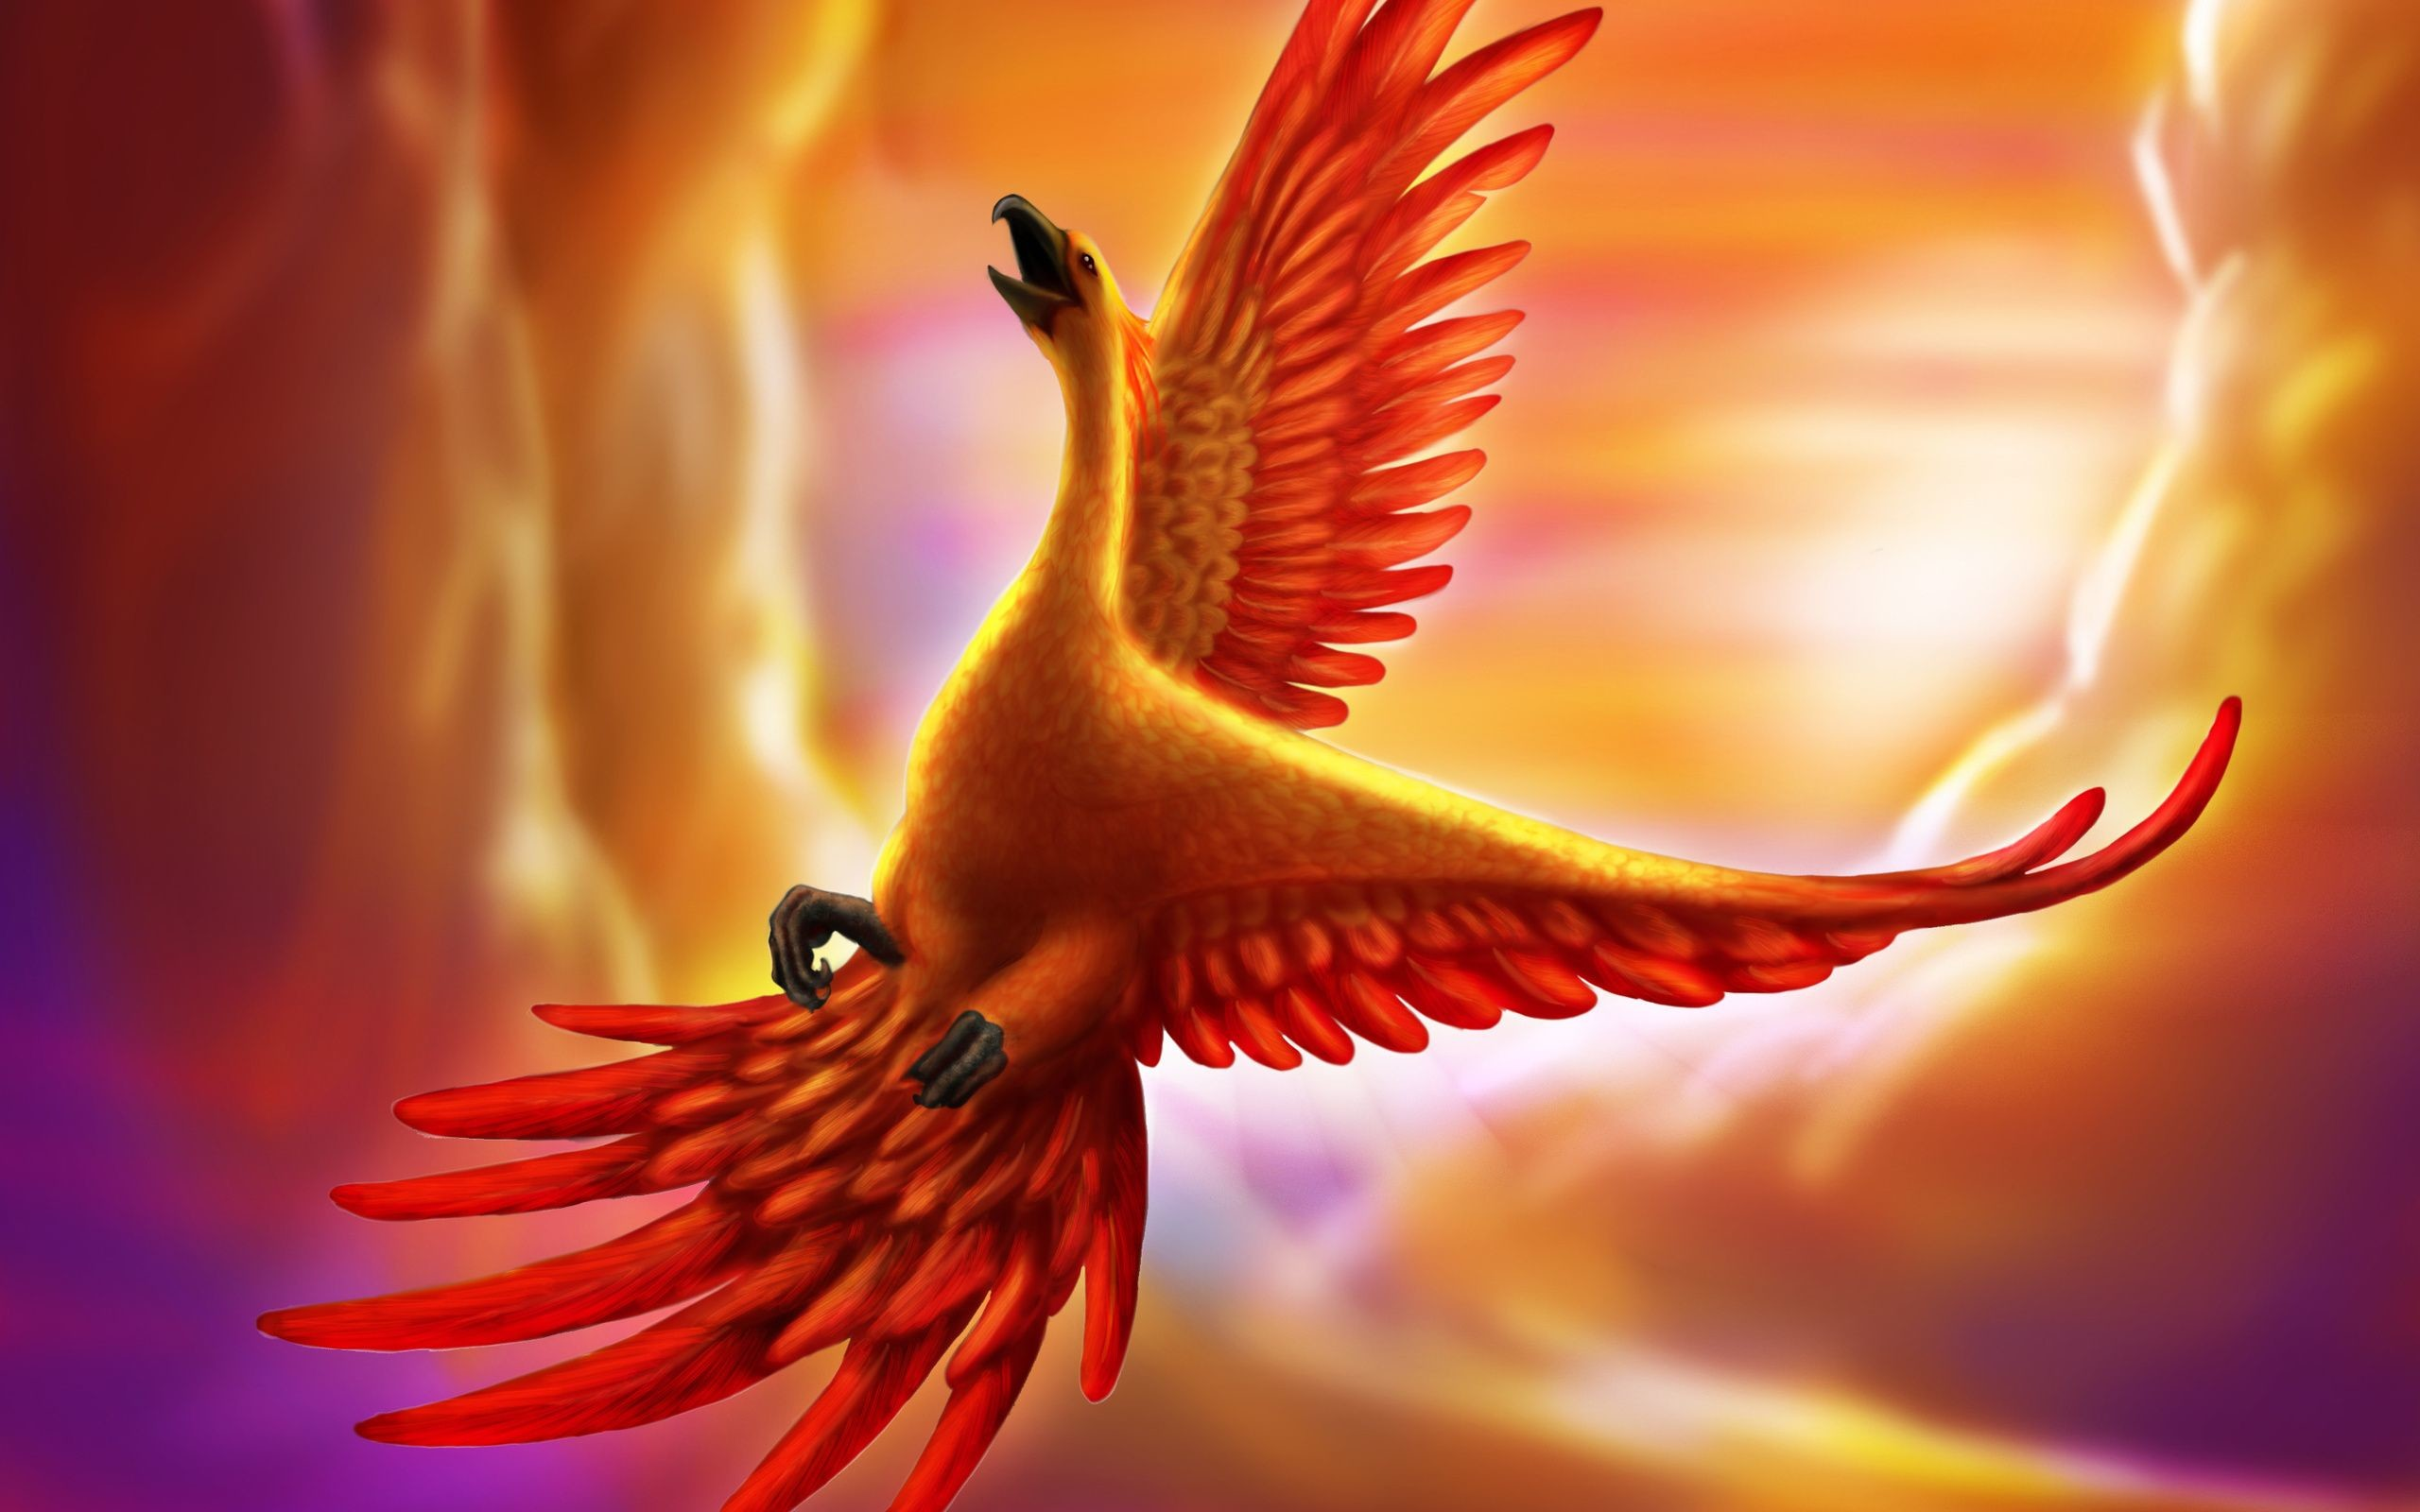 1920x1080 Phoenix Bird Flame Fire Abstract Hd Wallpapers High Definition Amazing Desktop For Windows Apple Mac Download Free